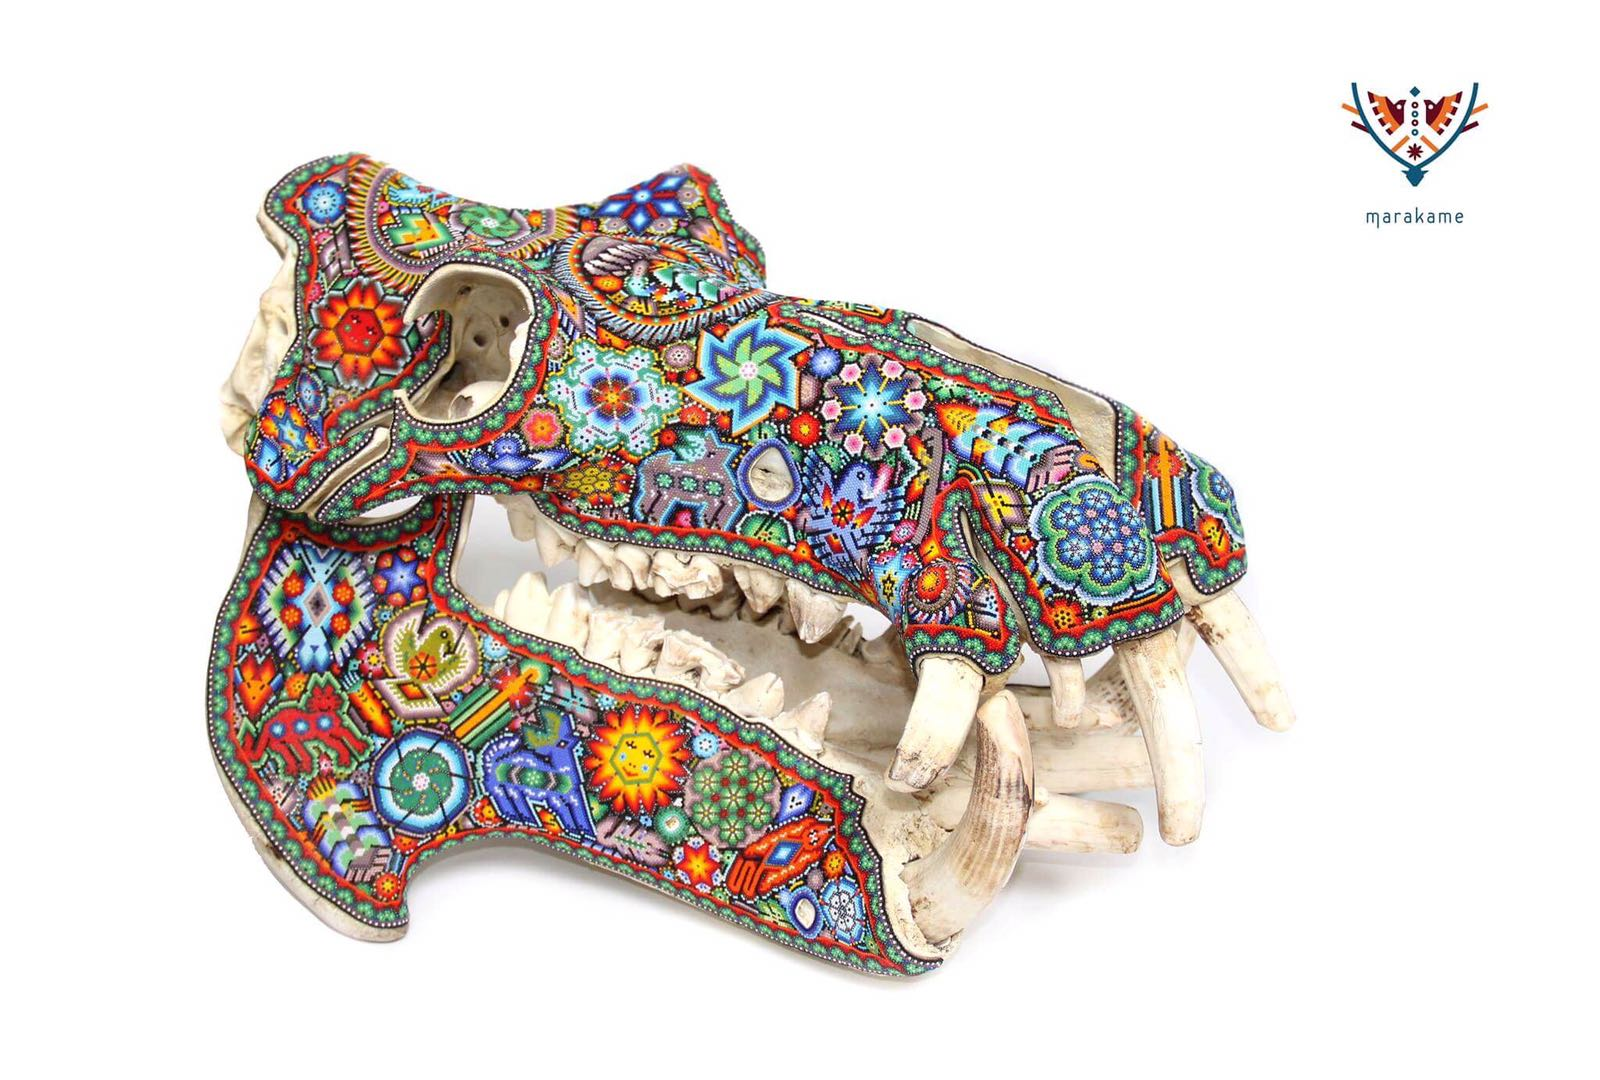 African hippo skull intervened with Huichol art in glass beads, it has real fangs